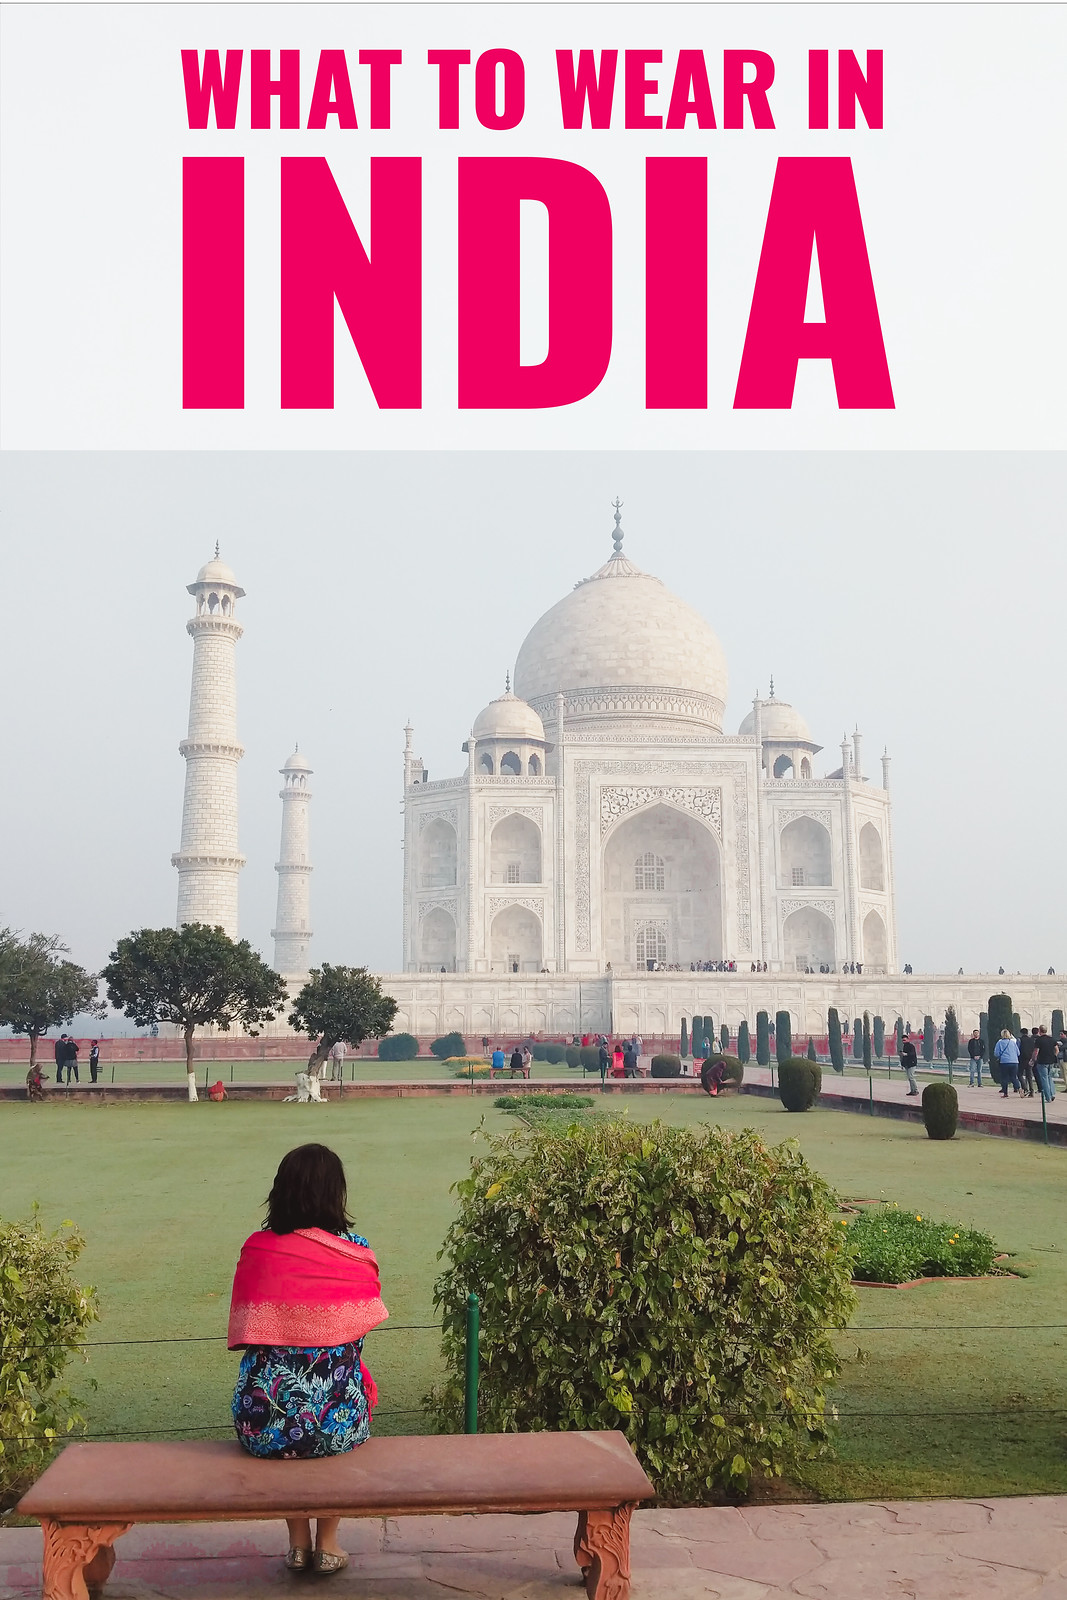 Packing list: what to wear in India. 10 travel bloggers share what women wear in India.